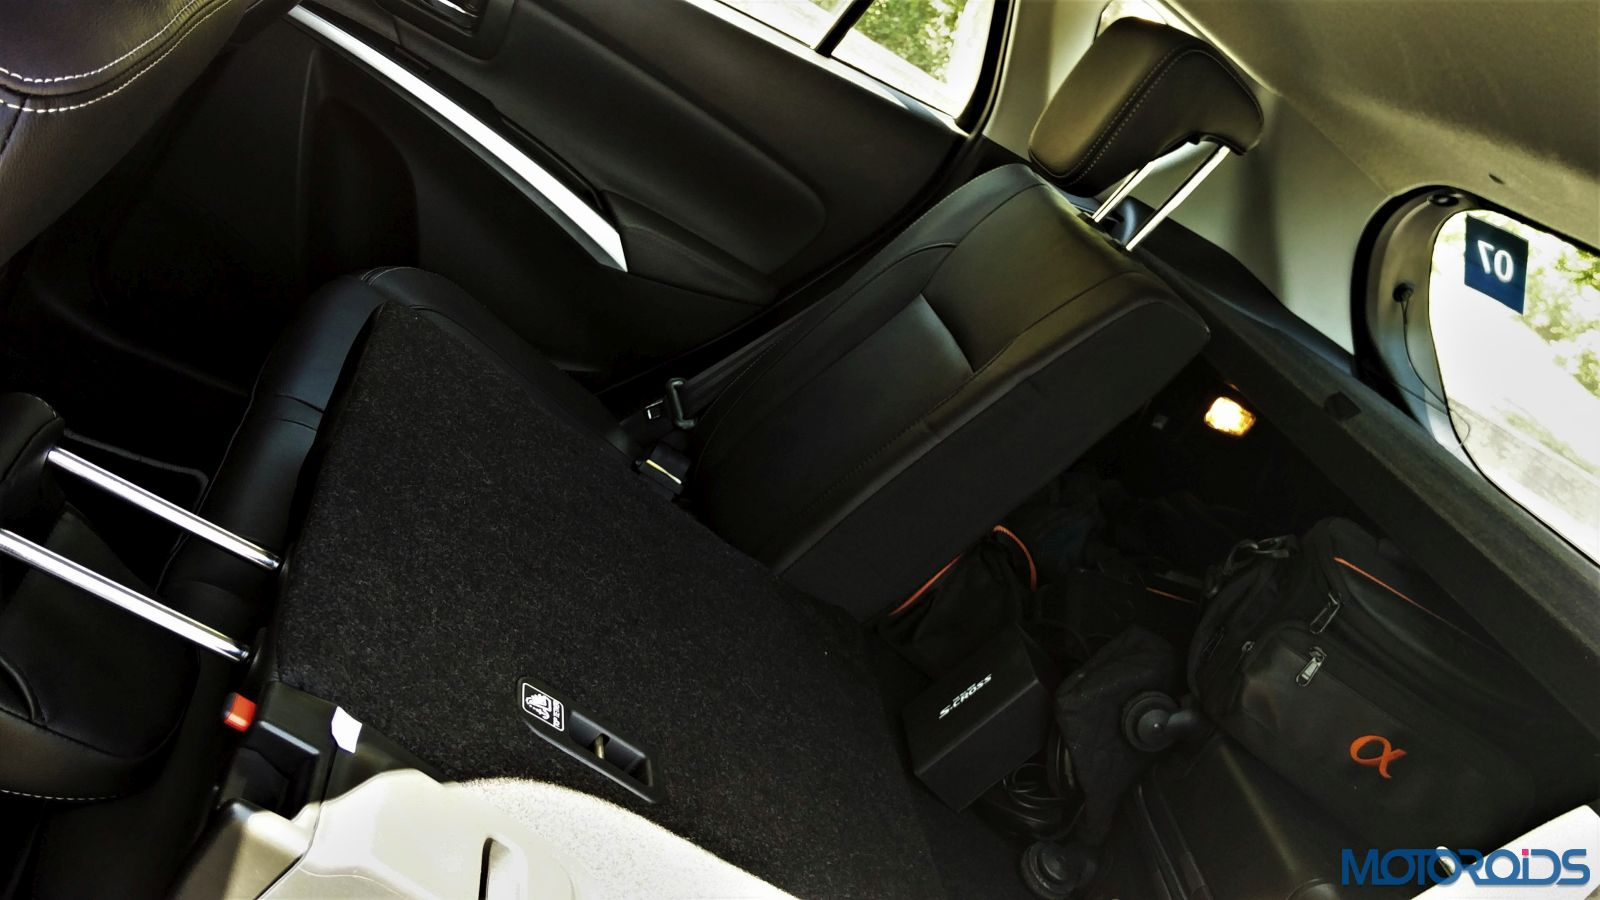 New-Maruti-Suzuki-S-Cross-Alpha-Review-Rear-backrest-split50